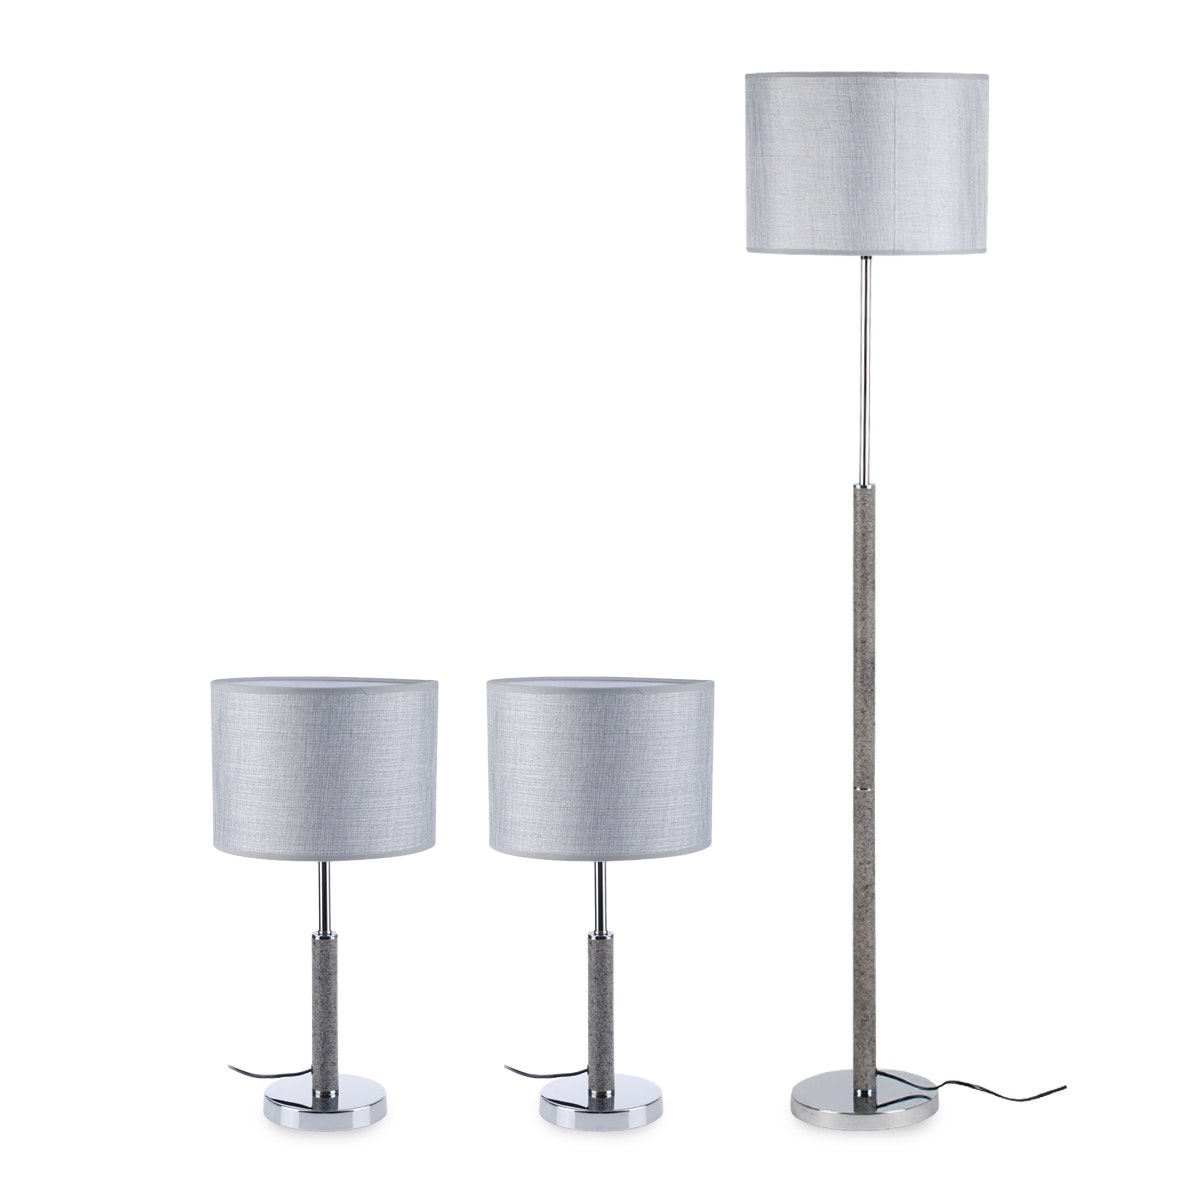 3+Projects Combo Set (2 Table Lamp + 1 Floor Lamp) Grey 3+DL-4033-GR-VG